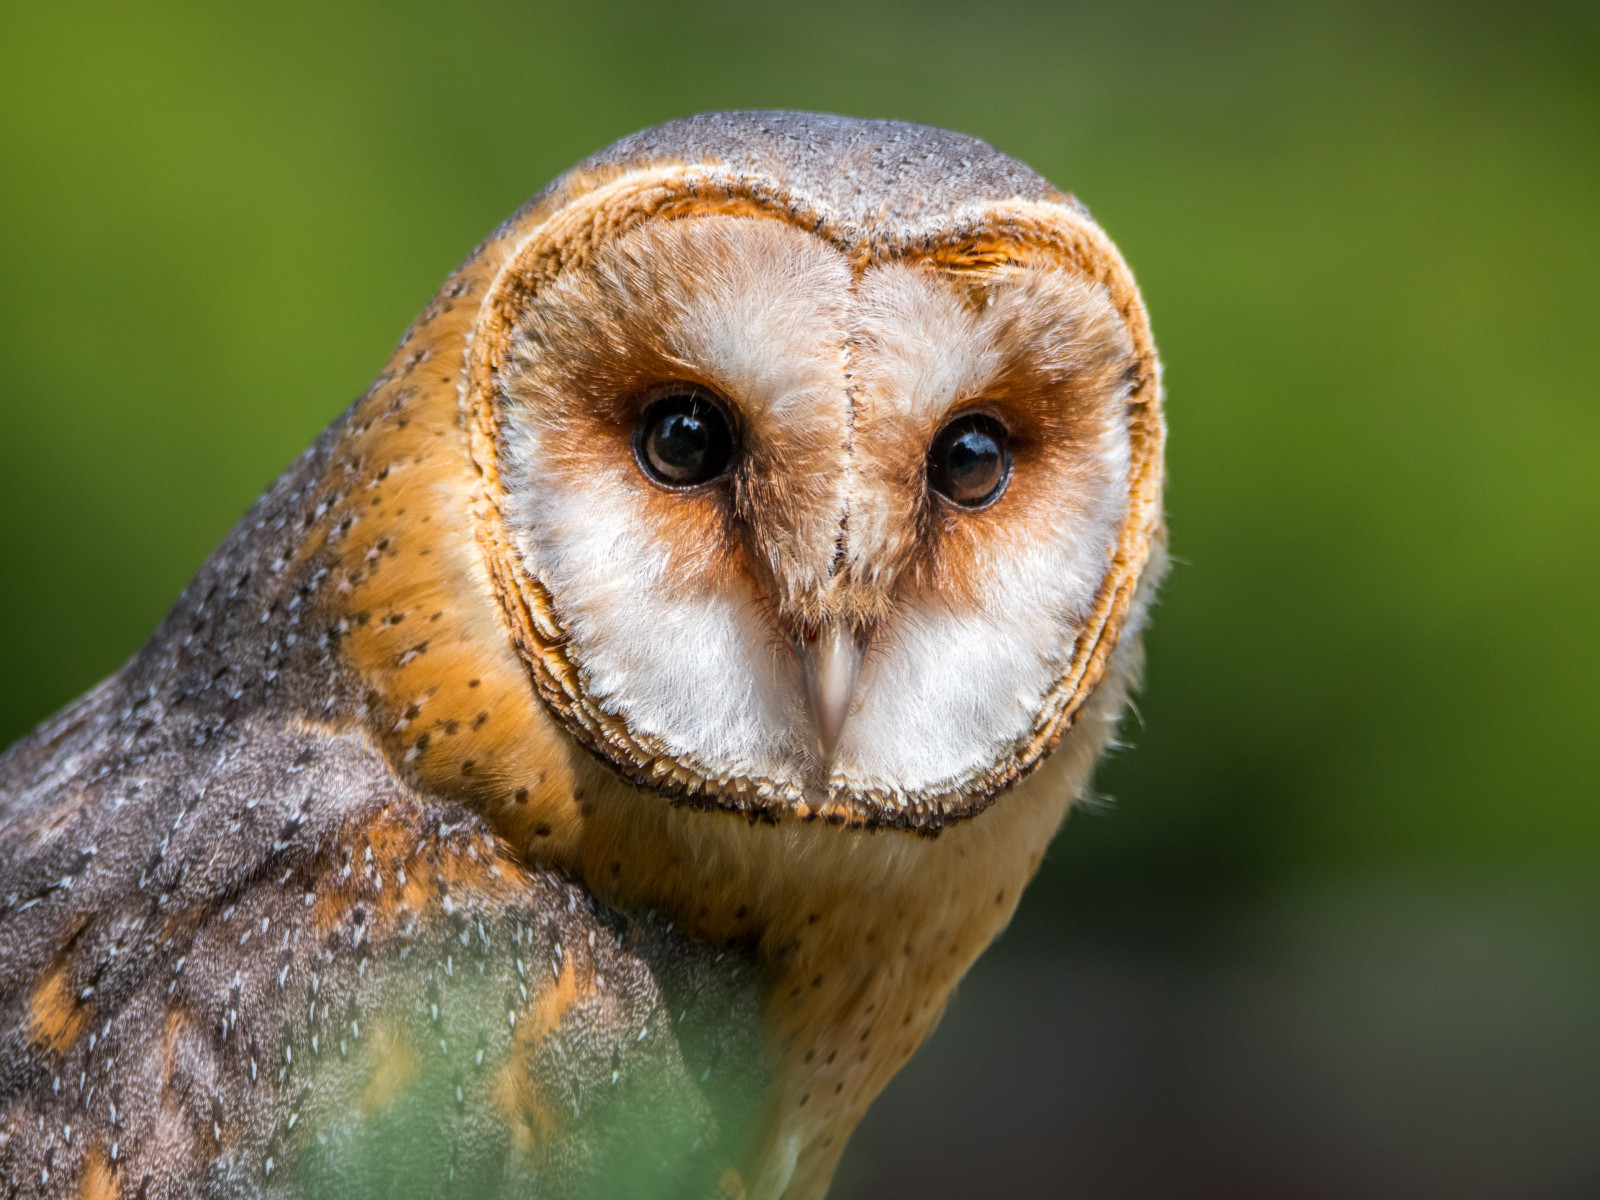 Barn Owl wallpaper 1600x1200